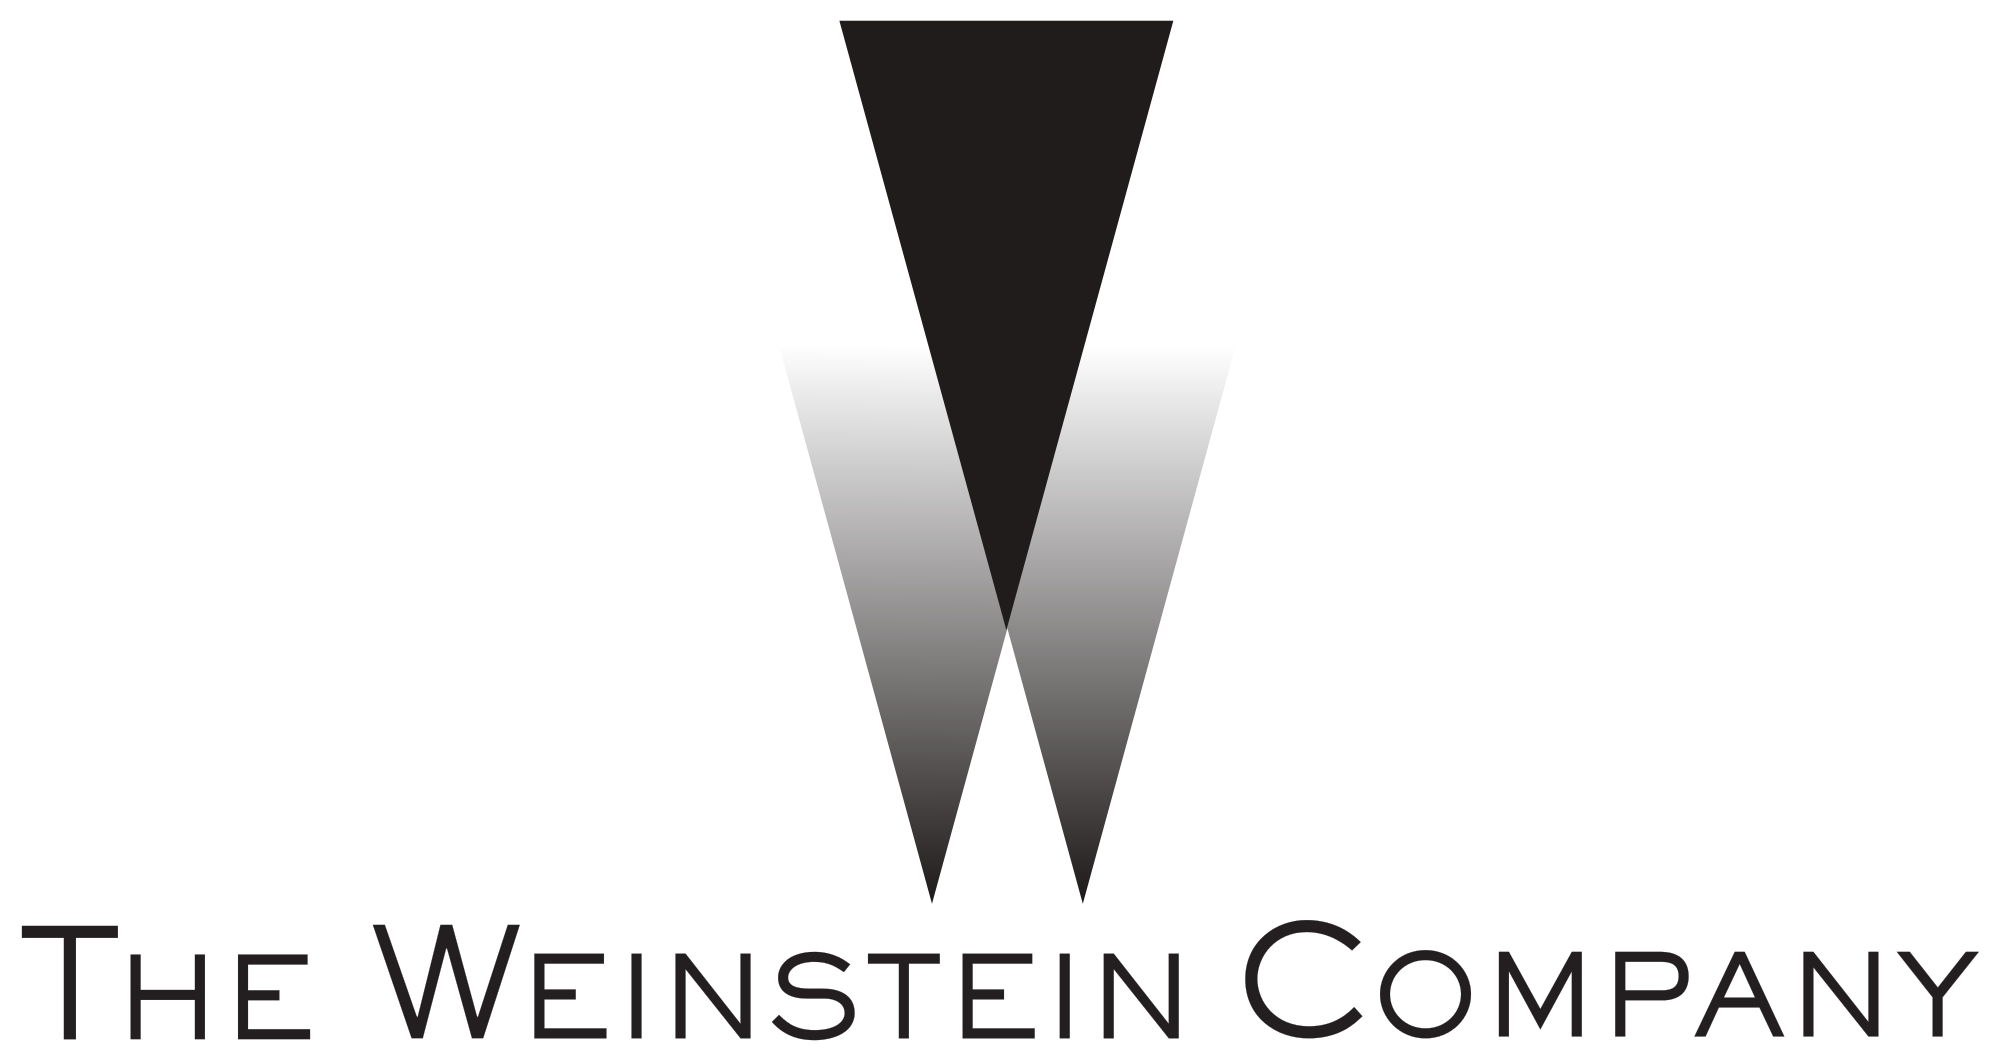 company logo, weinstein company sale collapses closer scrutiny #32524